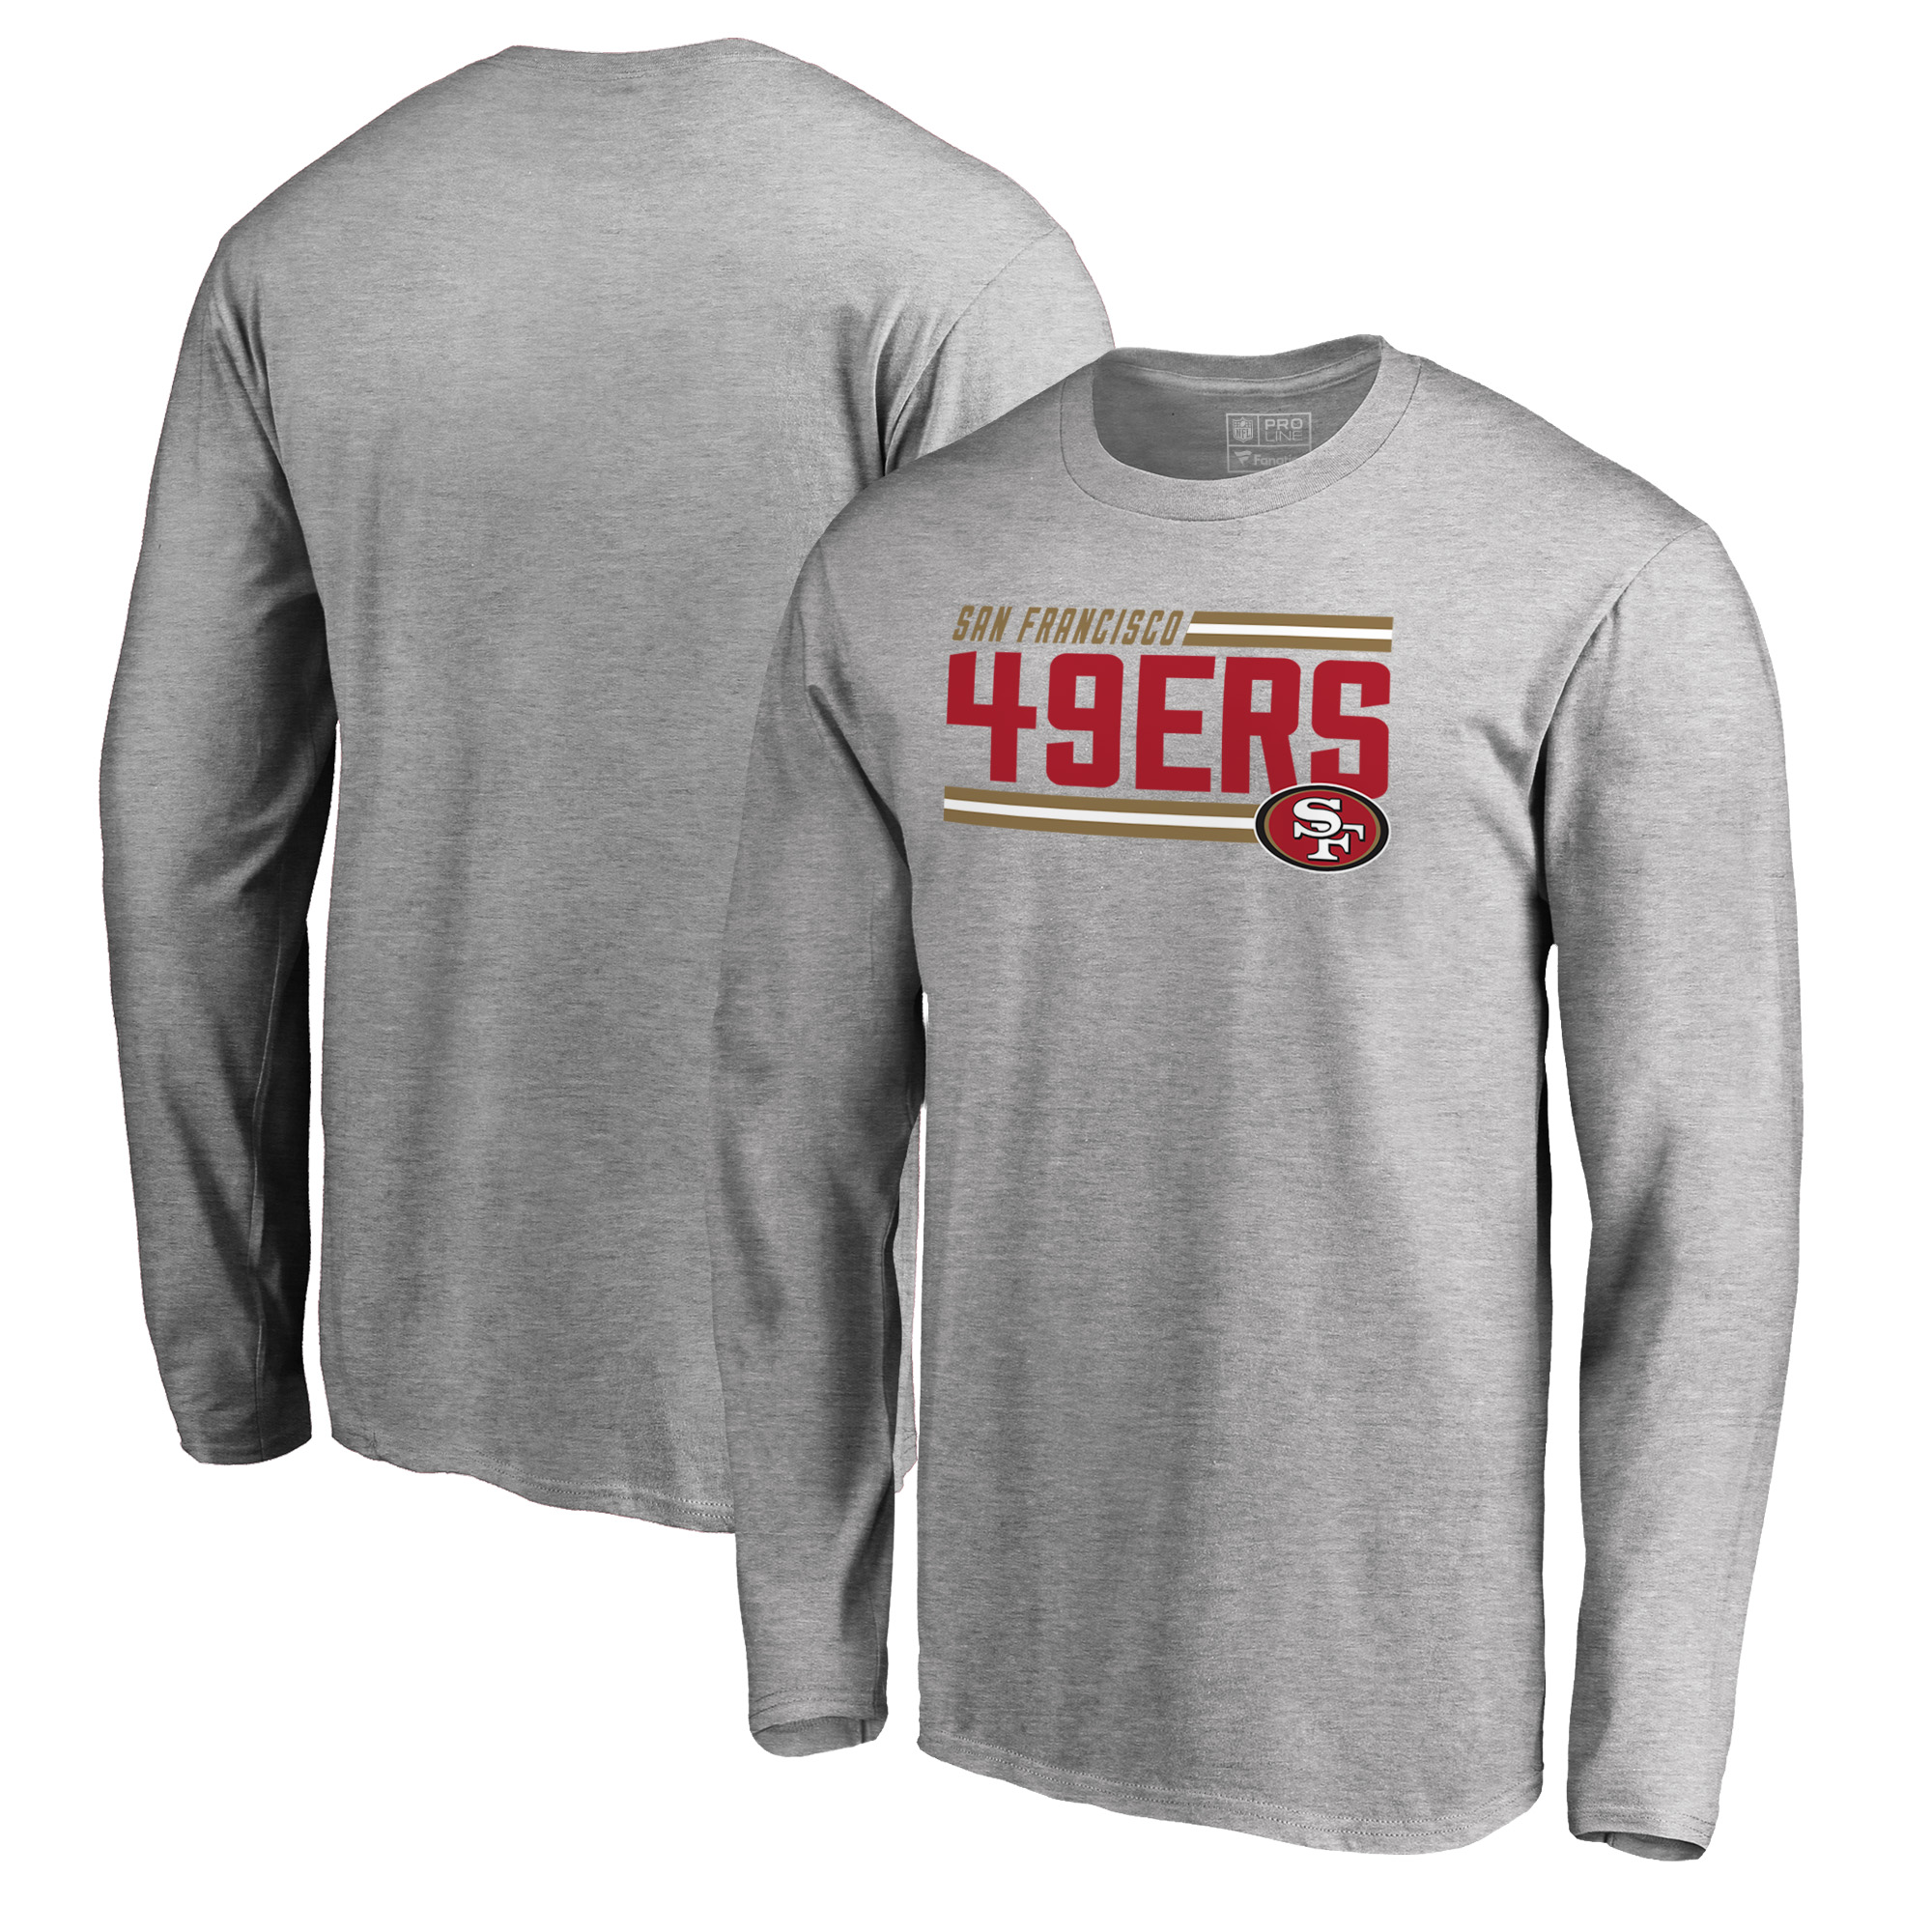 San Francisco 49ers NFL Pro Line by Fanatics Branded Iconic Collection On Side Stripe Long Sleeve T-Shirt - Ash